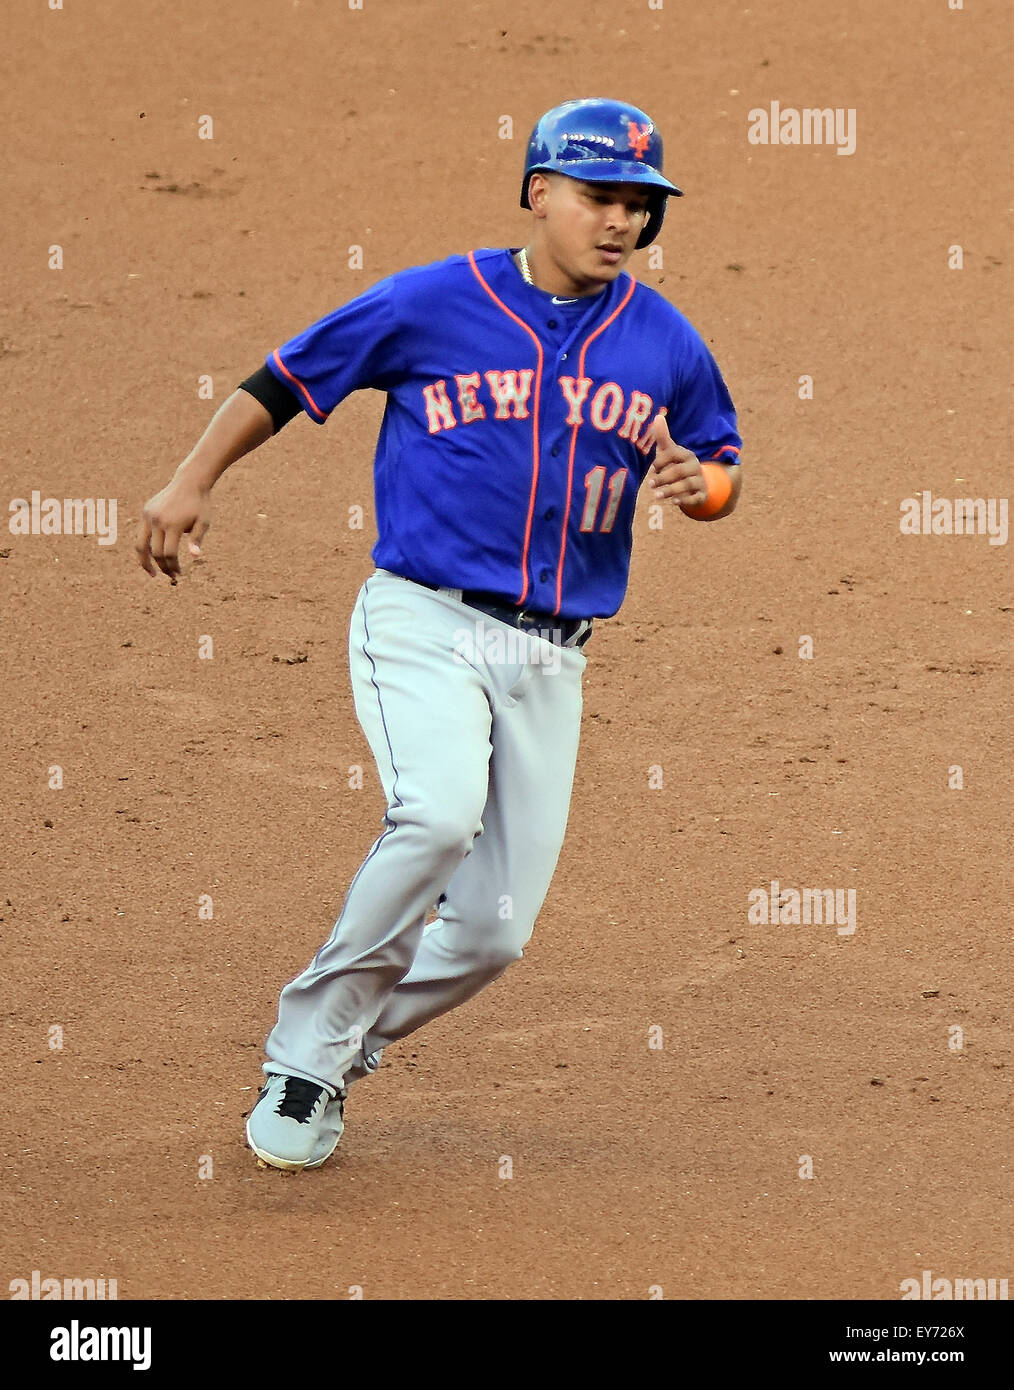 New York Mets Third Base Stockfotos & New York Mets Third Base ...